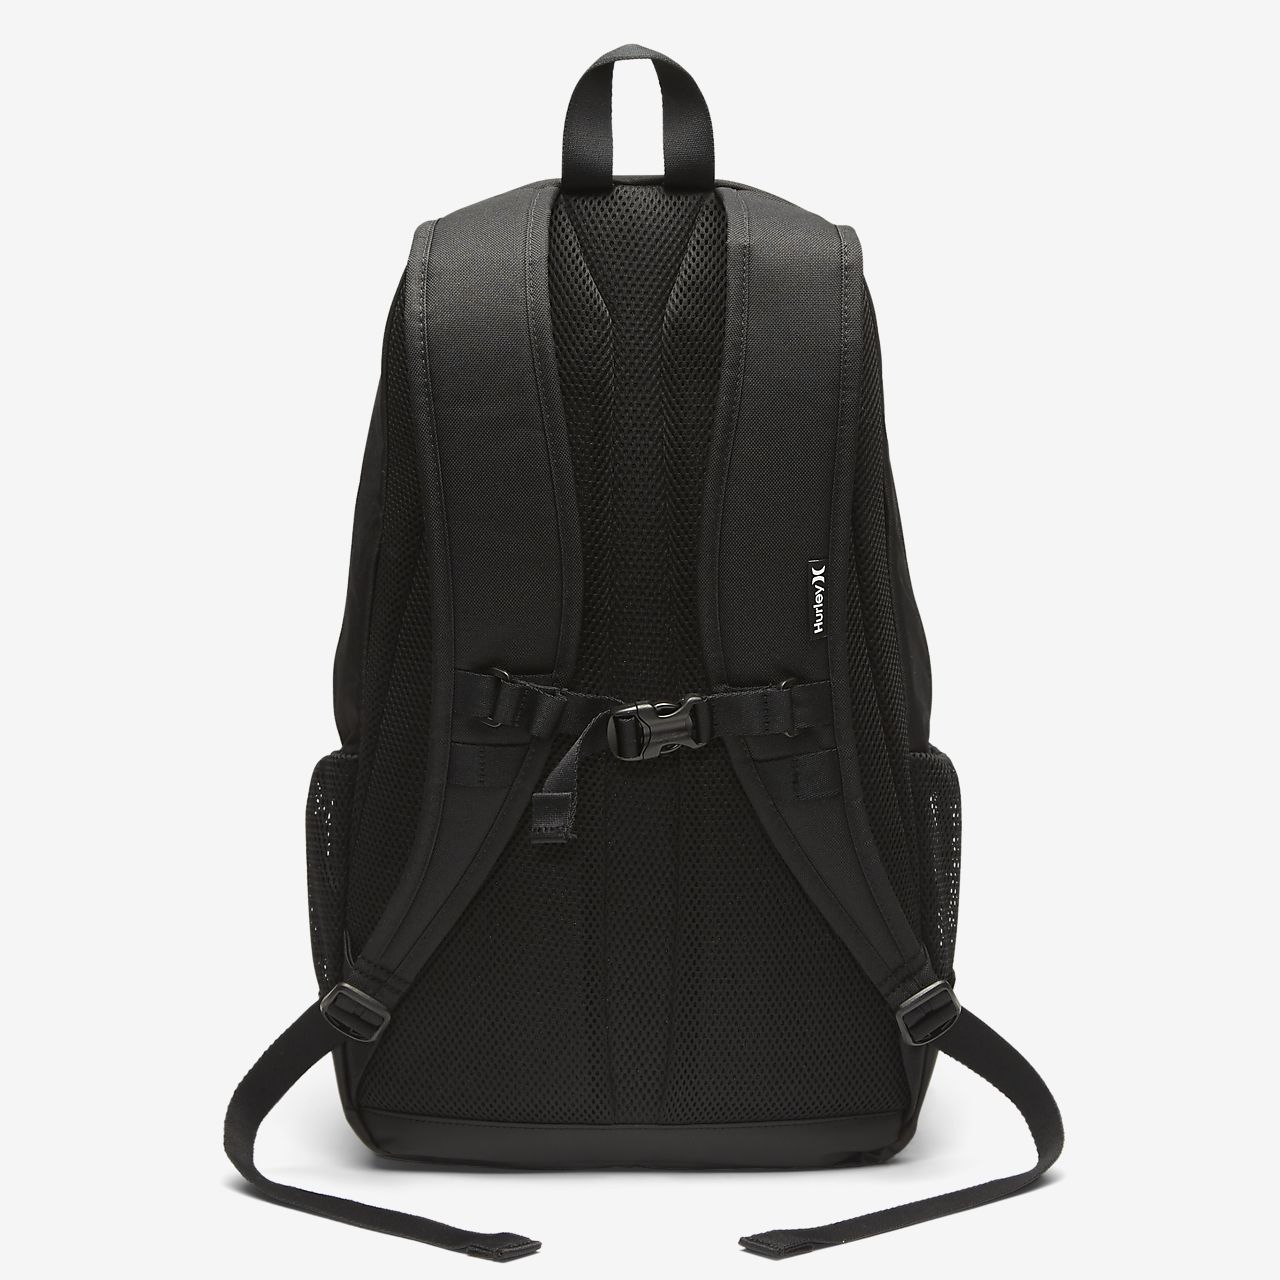 aa576a55b Low Resolution Hurley Renegade II Solid Backpack Hurley Renegade II Solid  Backpack